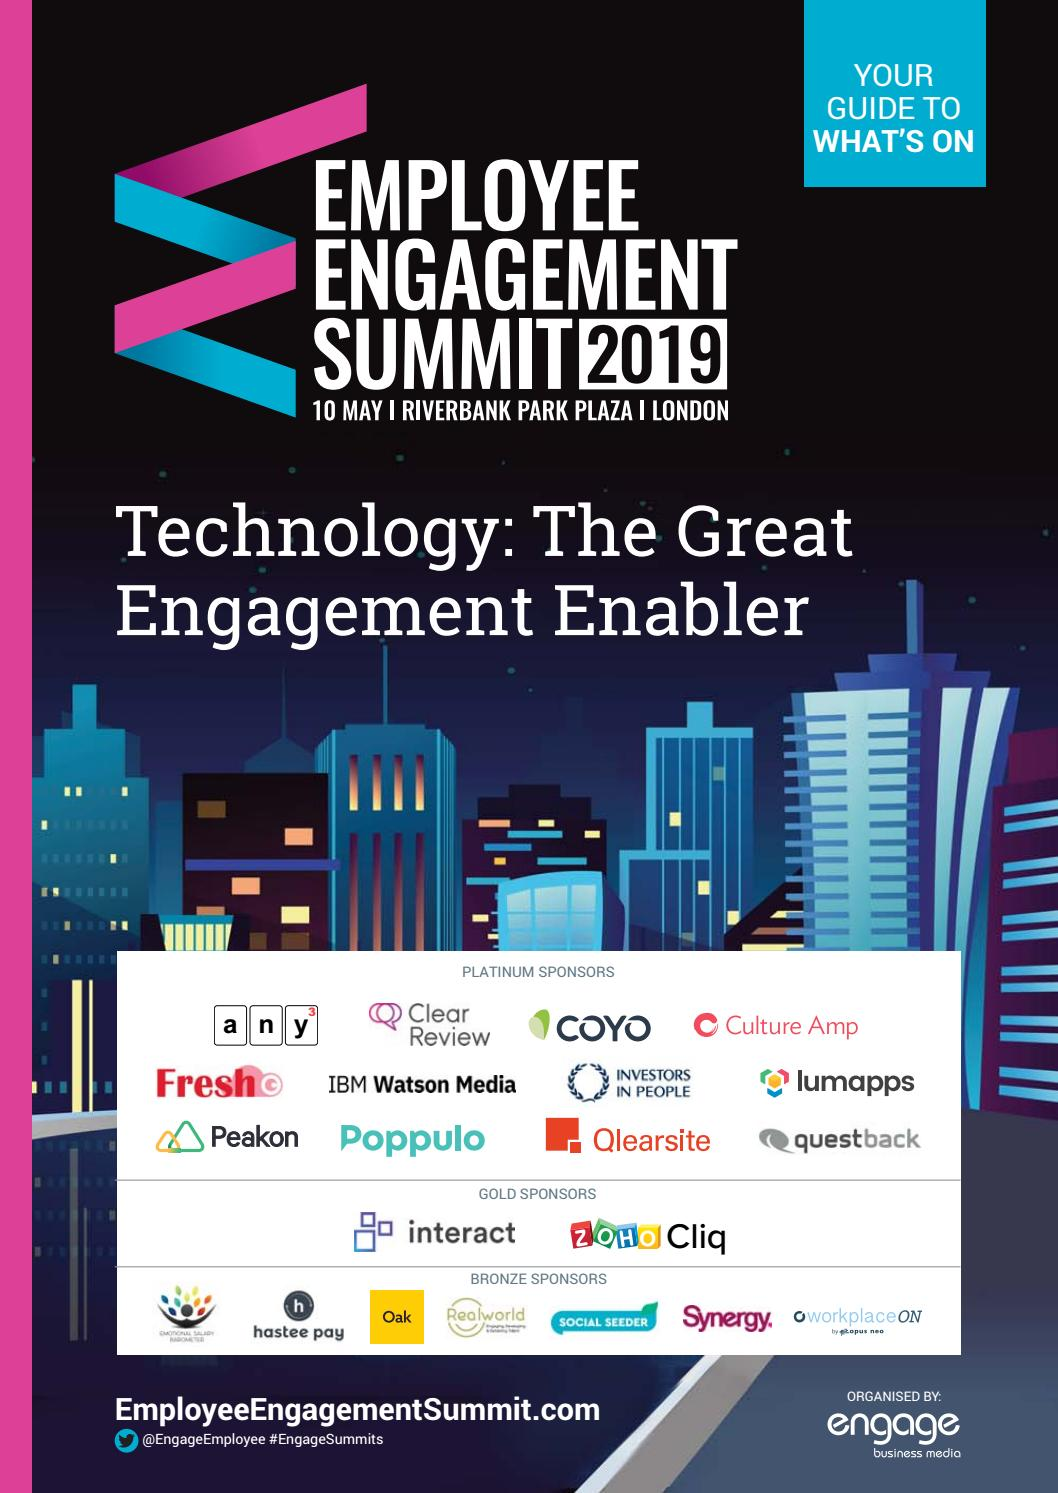 2019 Employee Engagement Summit 'Whats On' Guide by Engage Business